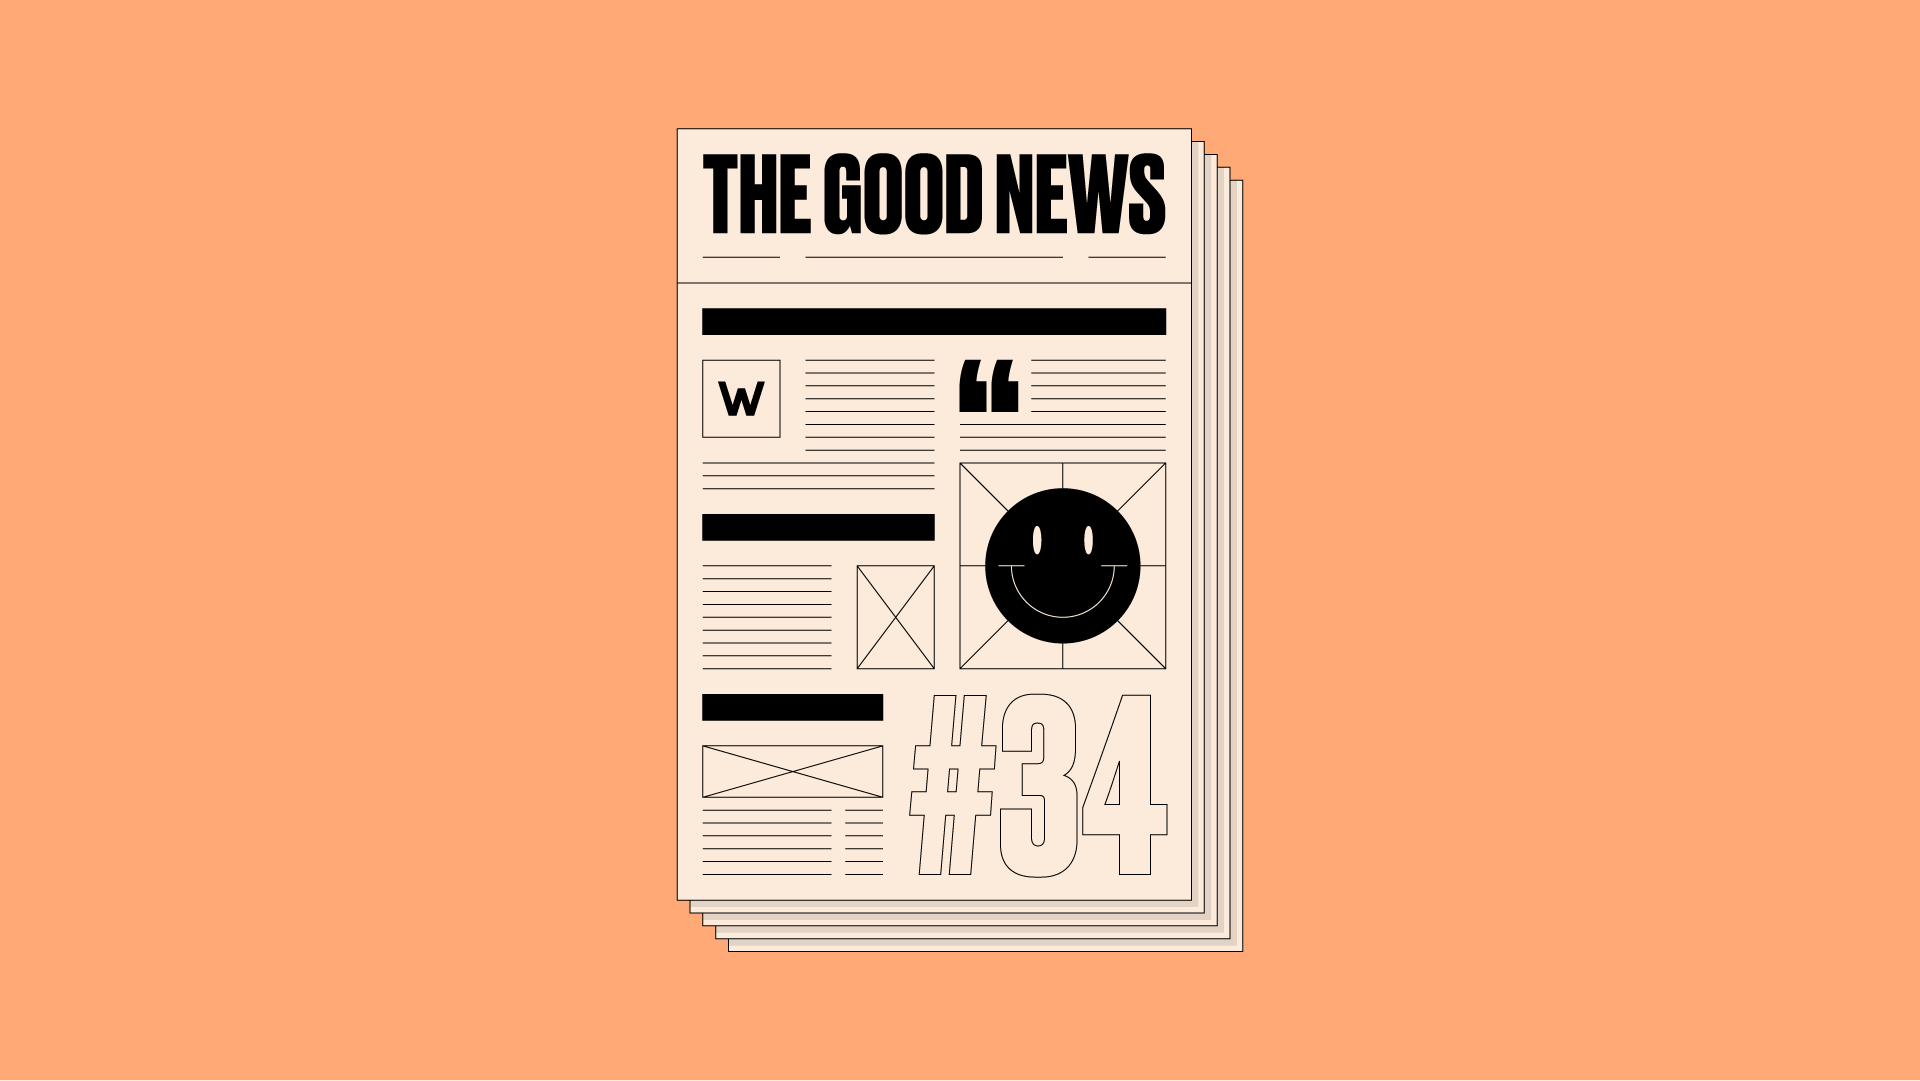 Newspaper front page with 'The Good News #34' written on it, on an orange background